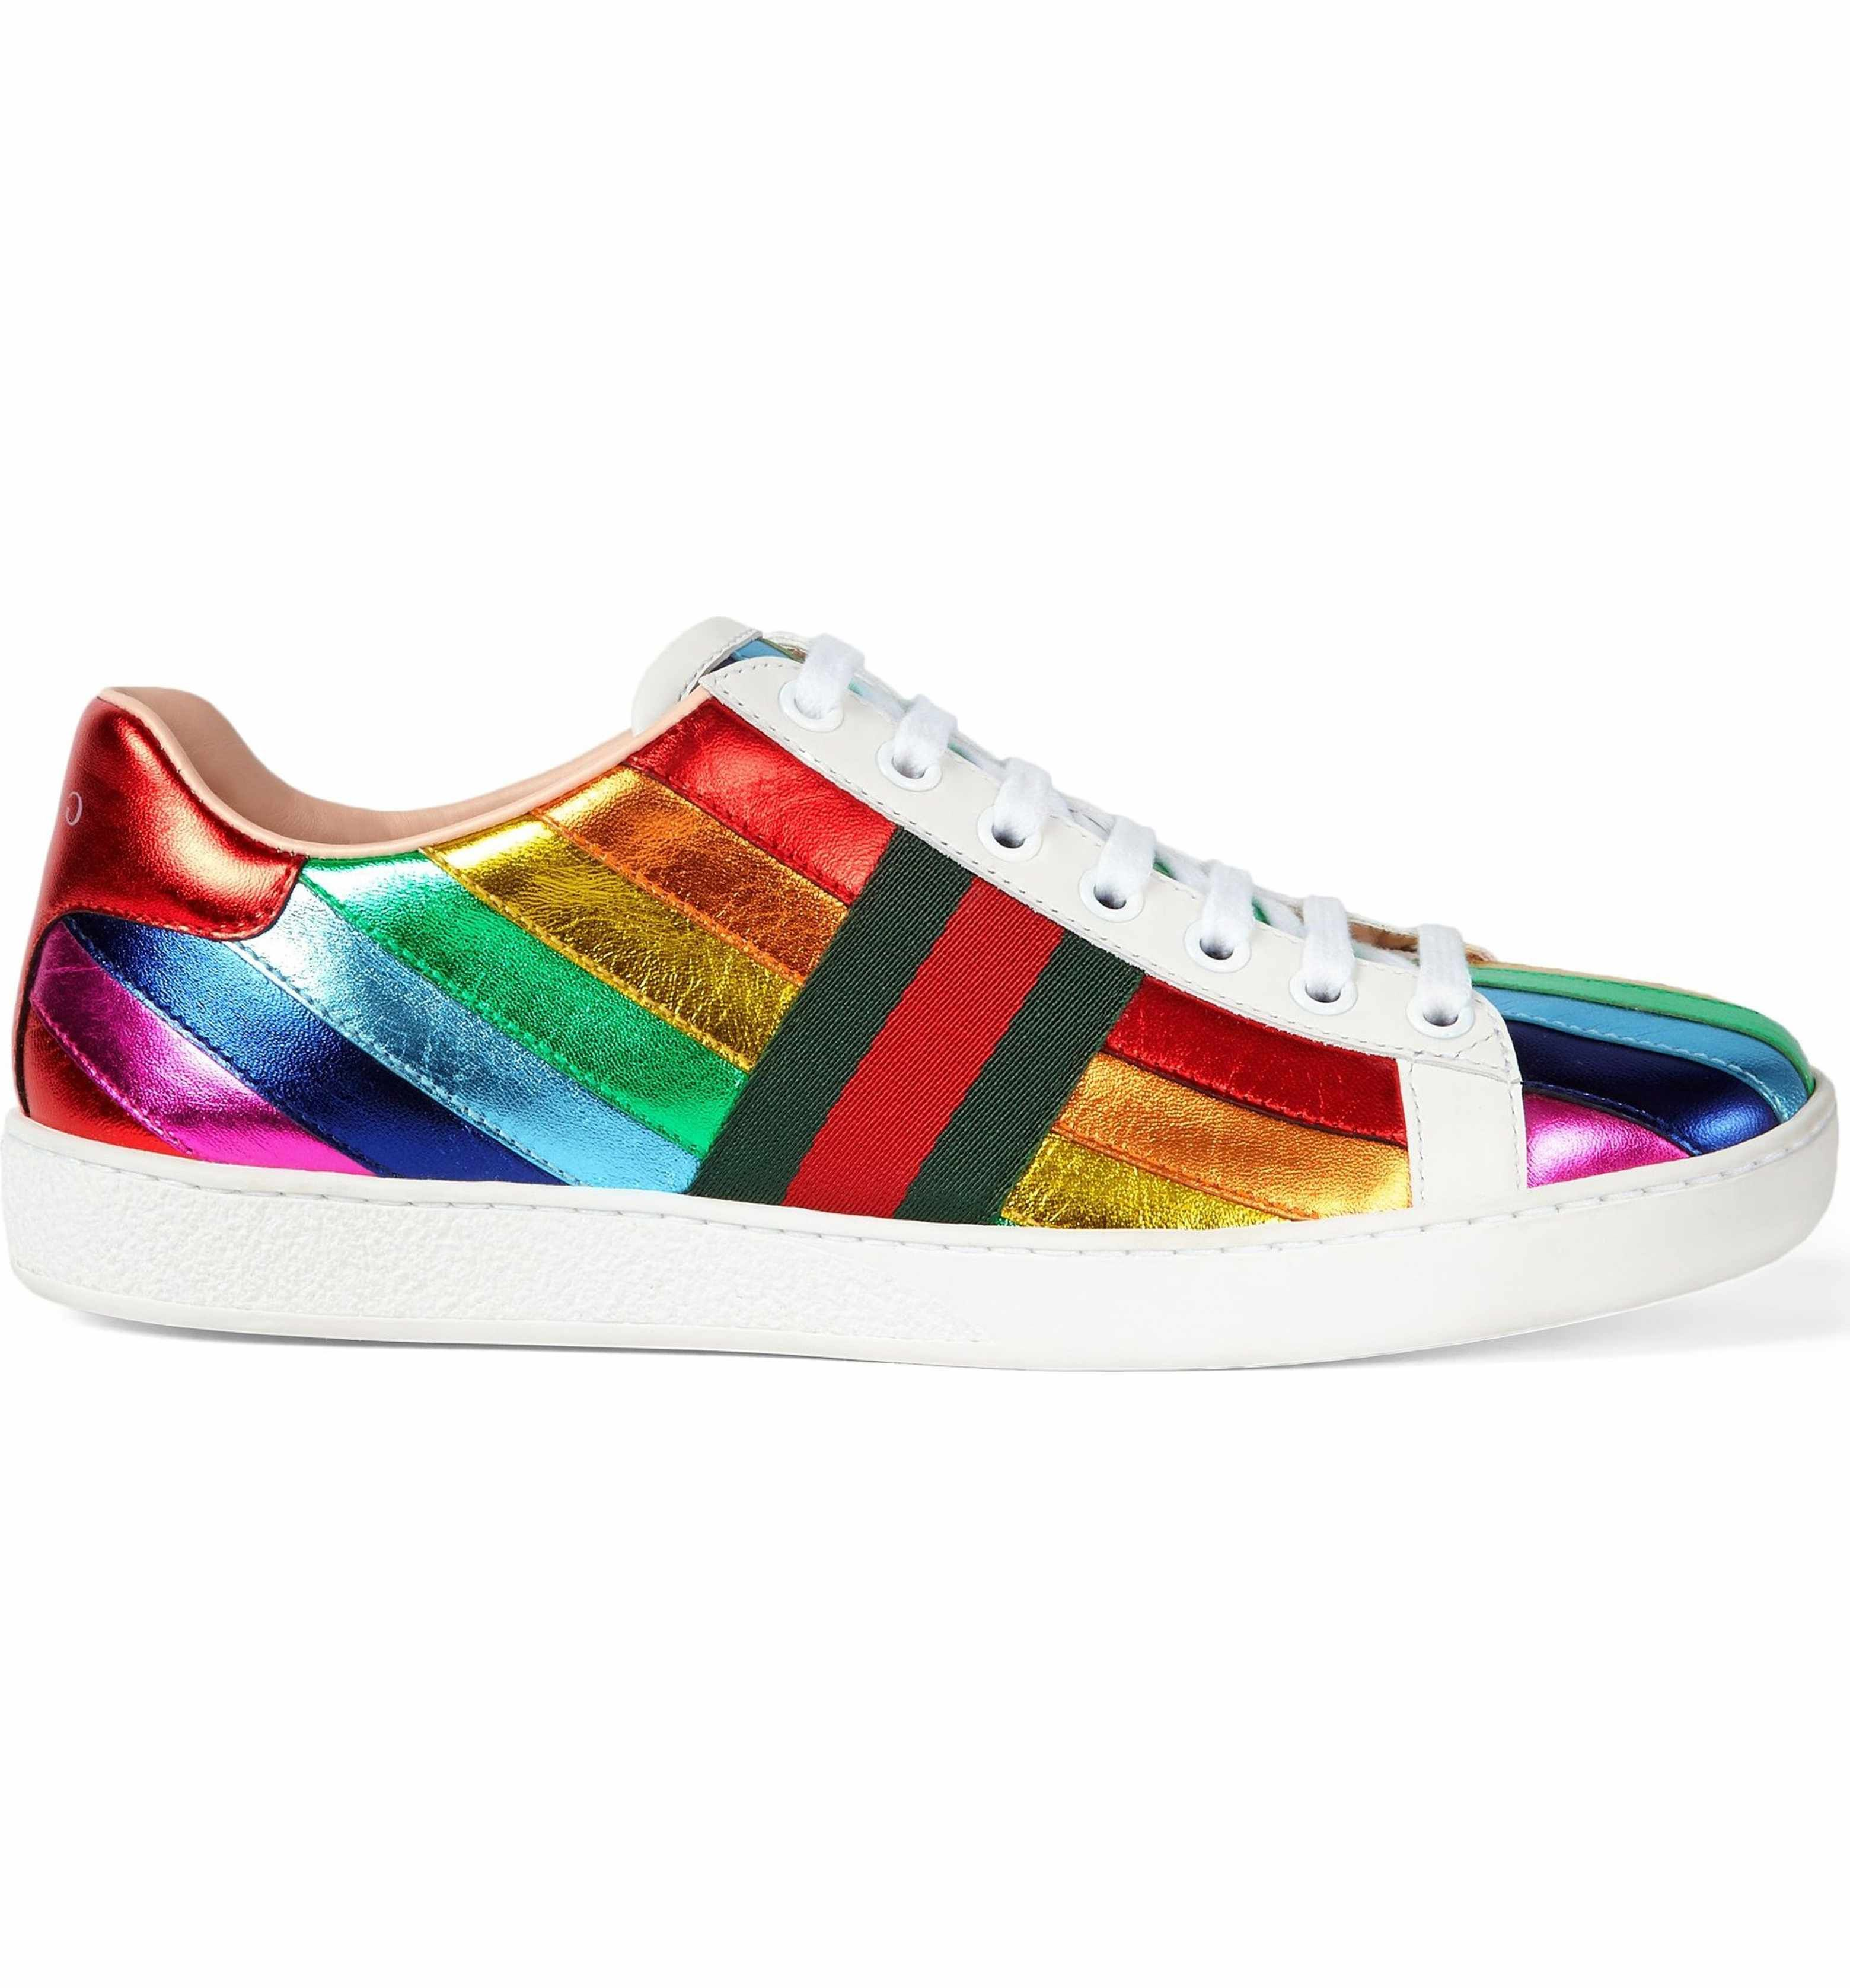 68e4868b6ab Main Image - Gucci New Ace Rainbow Sneaker (Women)